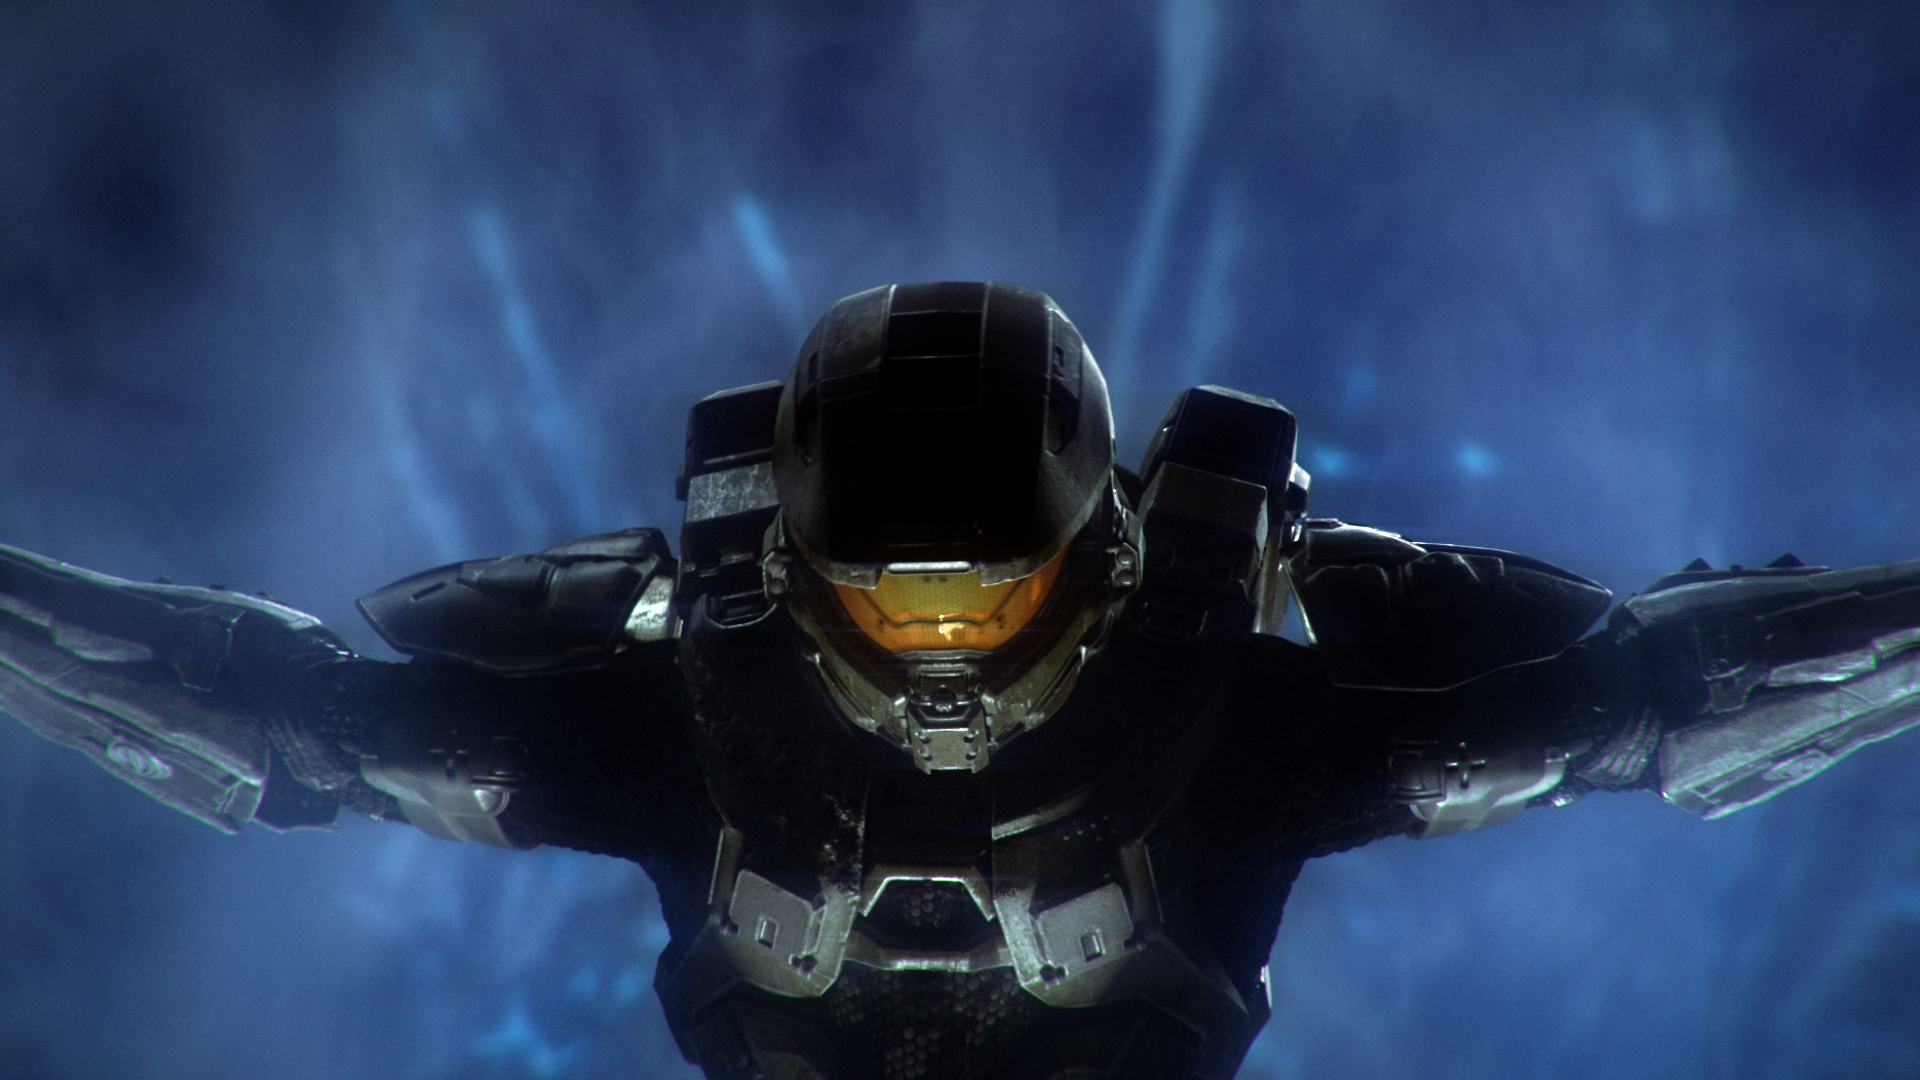 Halo Libro 10 Top Tips For Halo 4 The Average Gamer